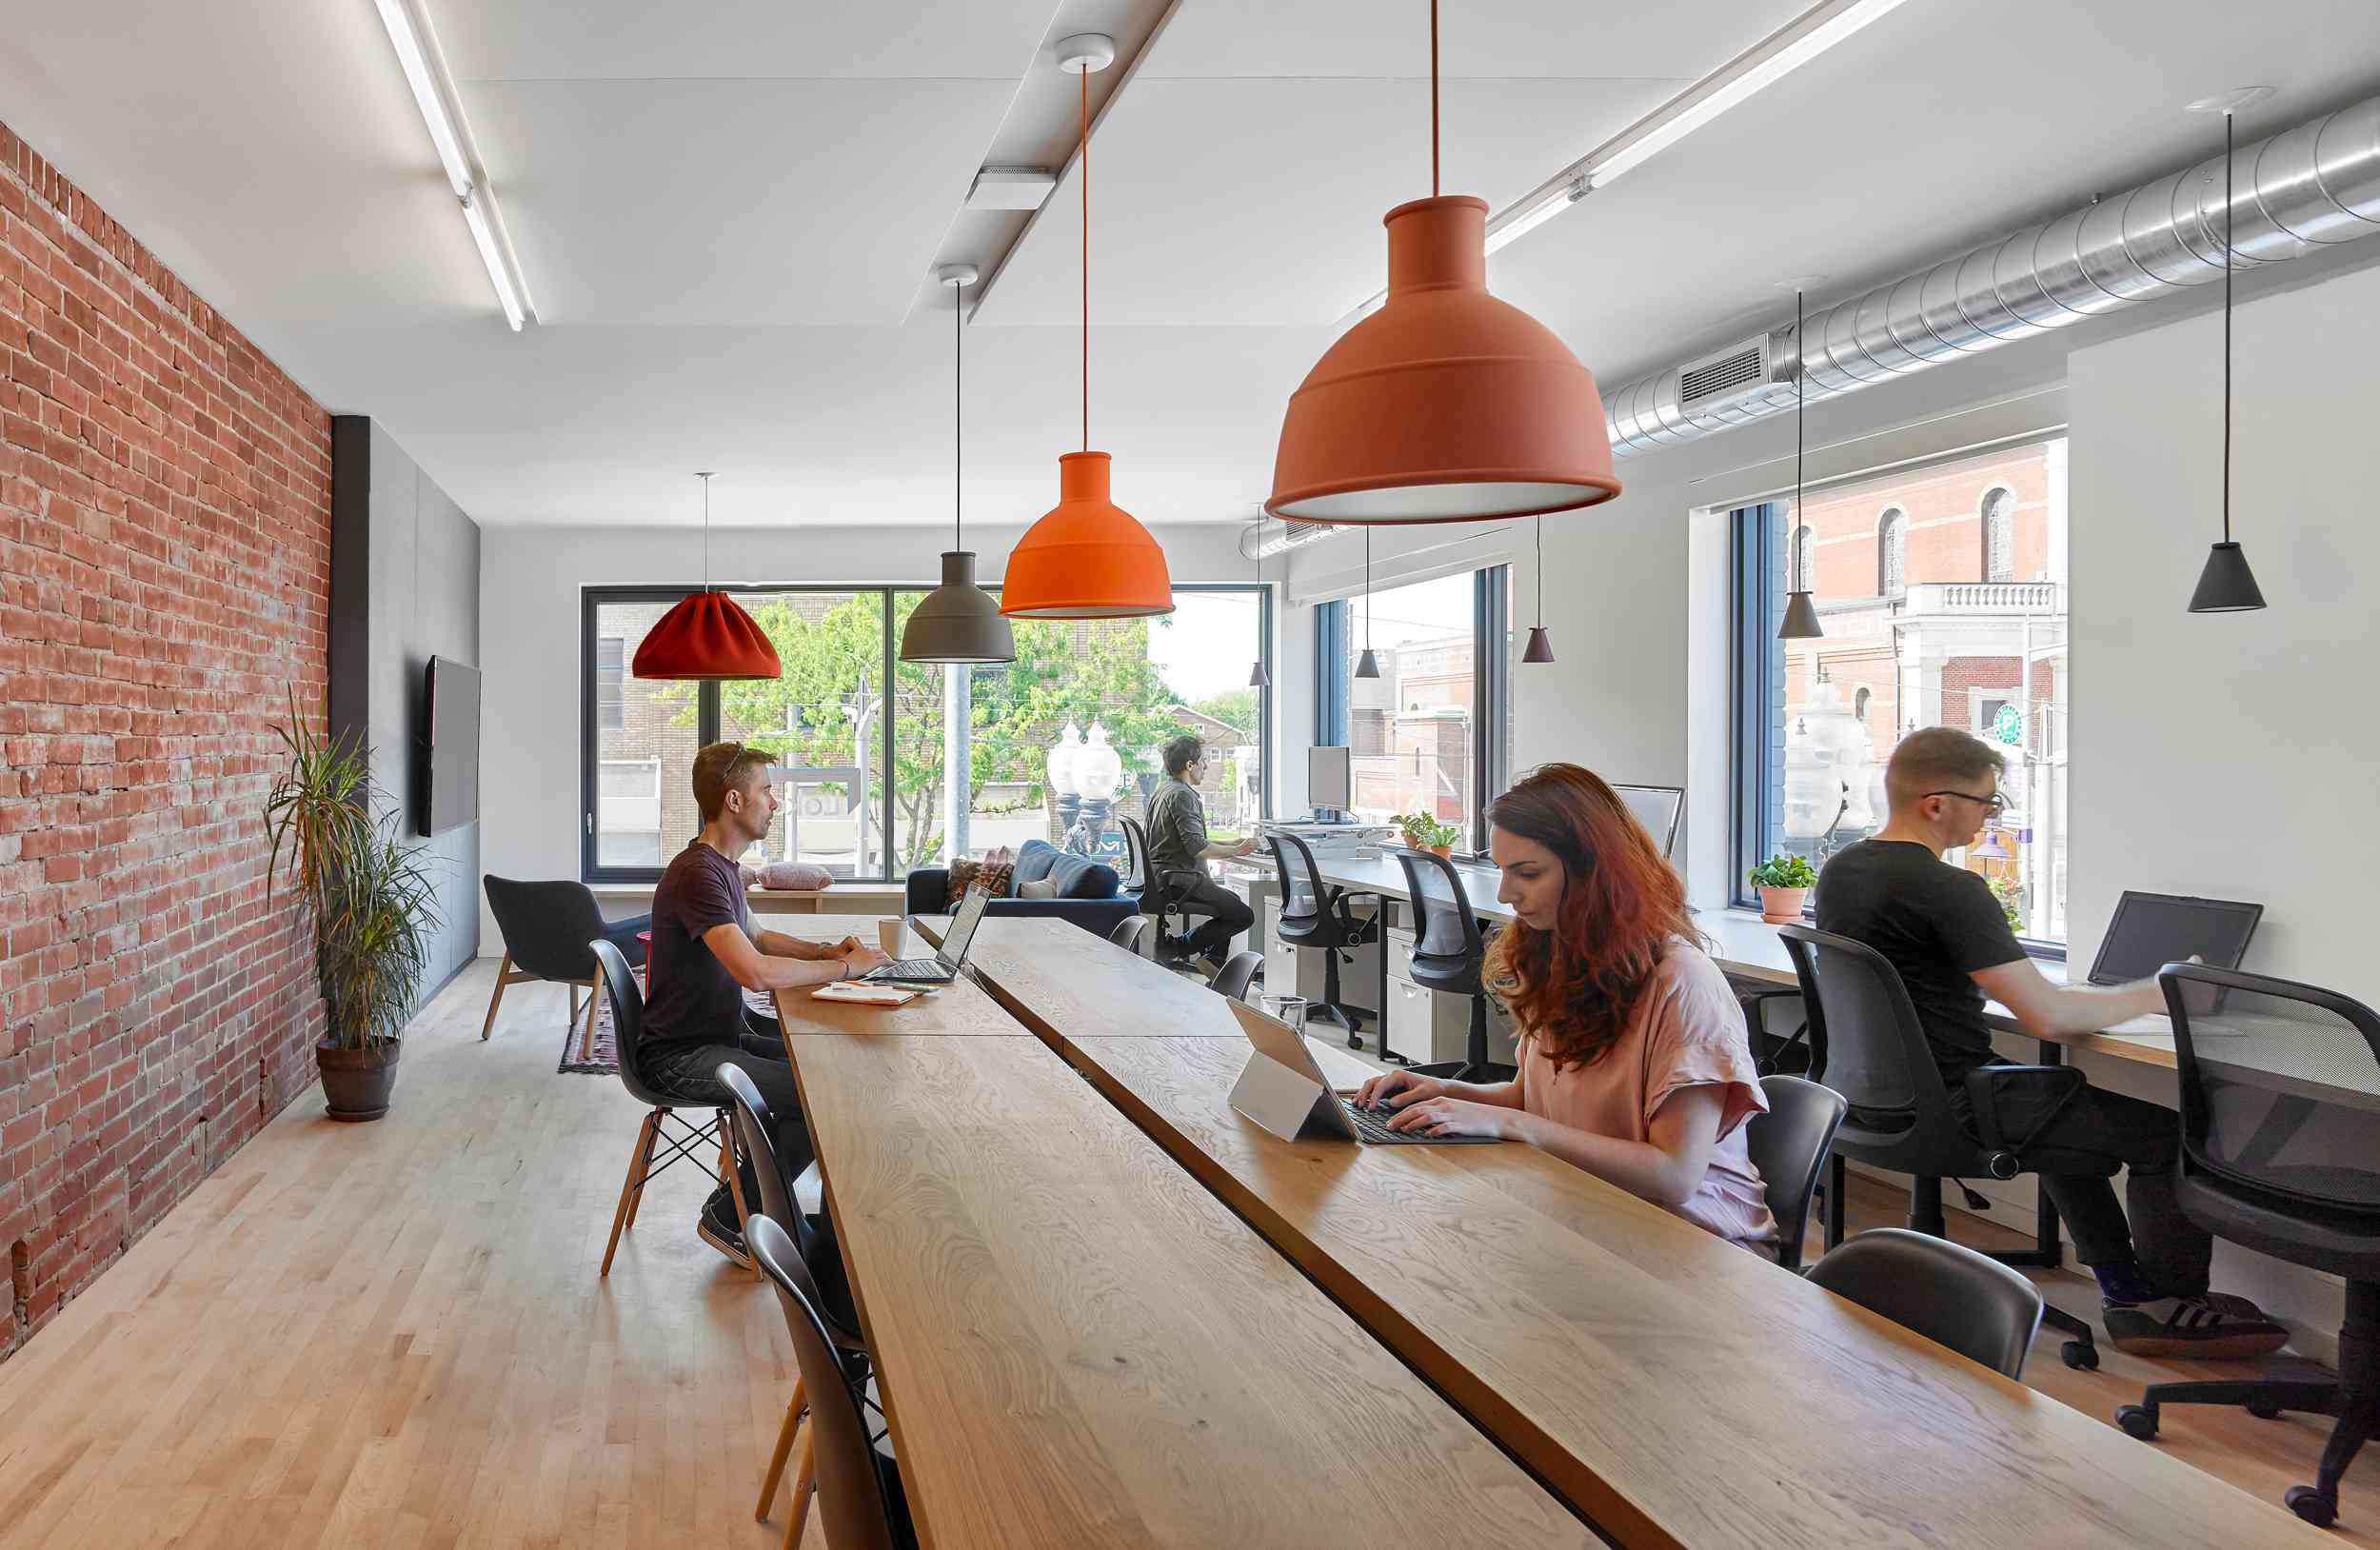 Locaal coworking spaces